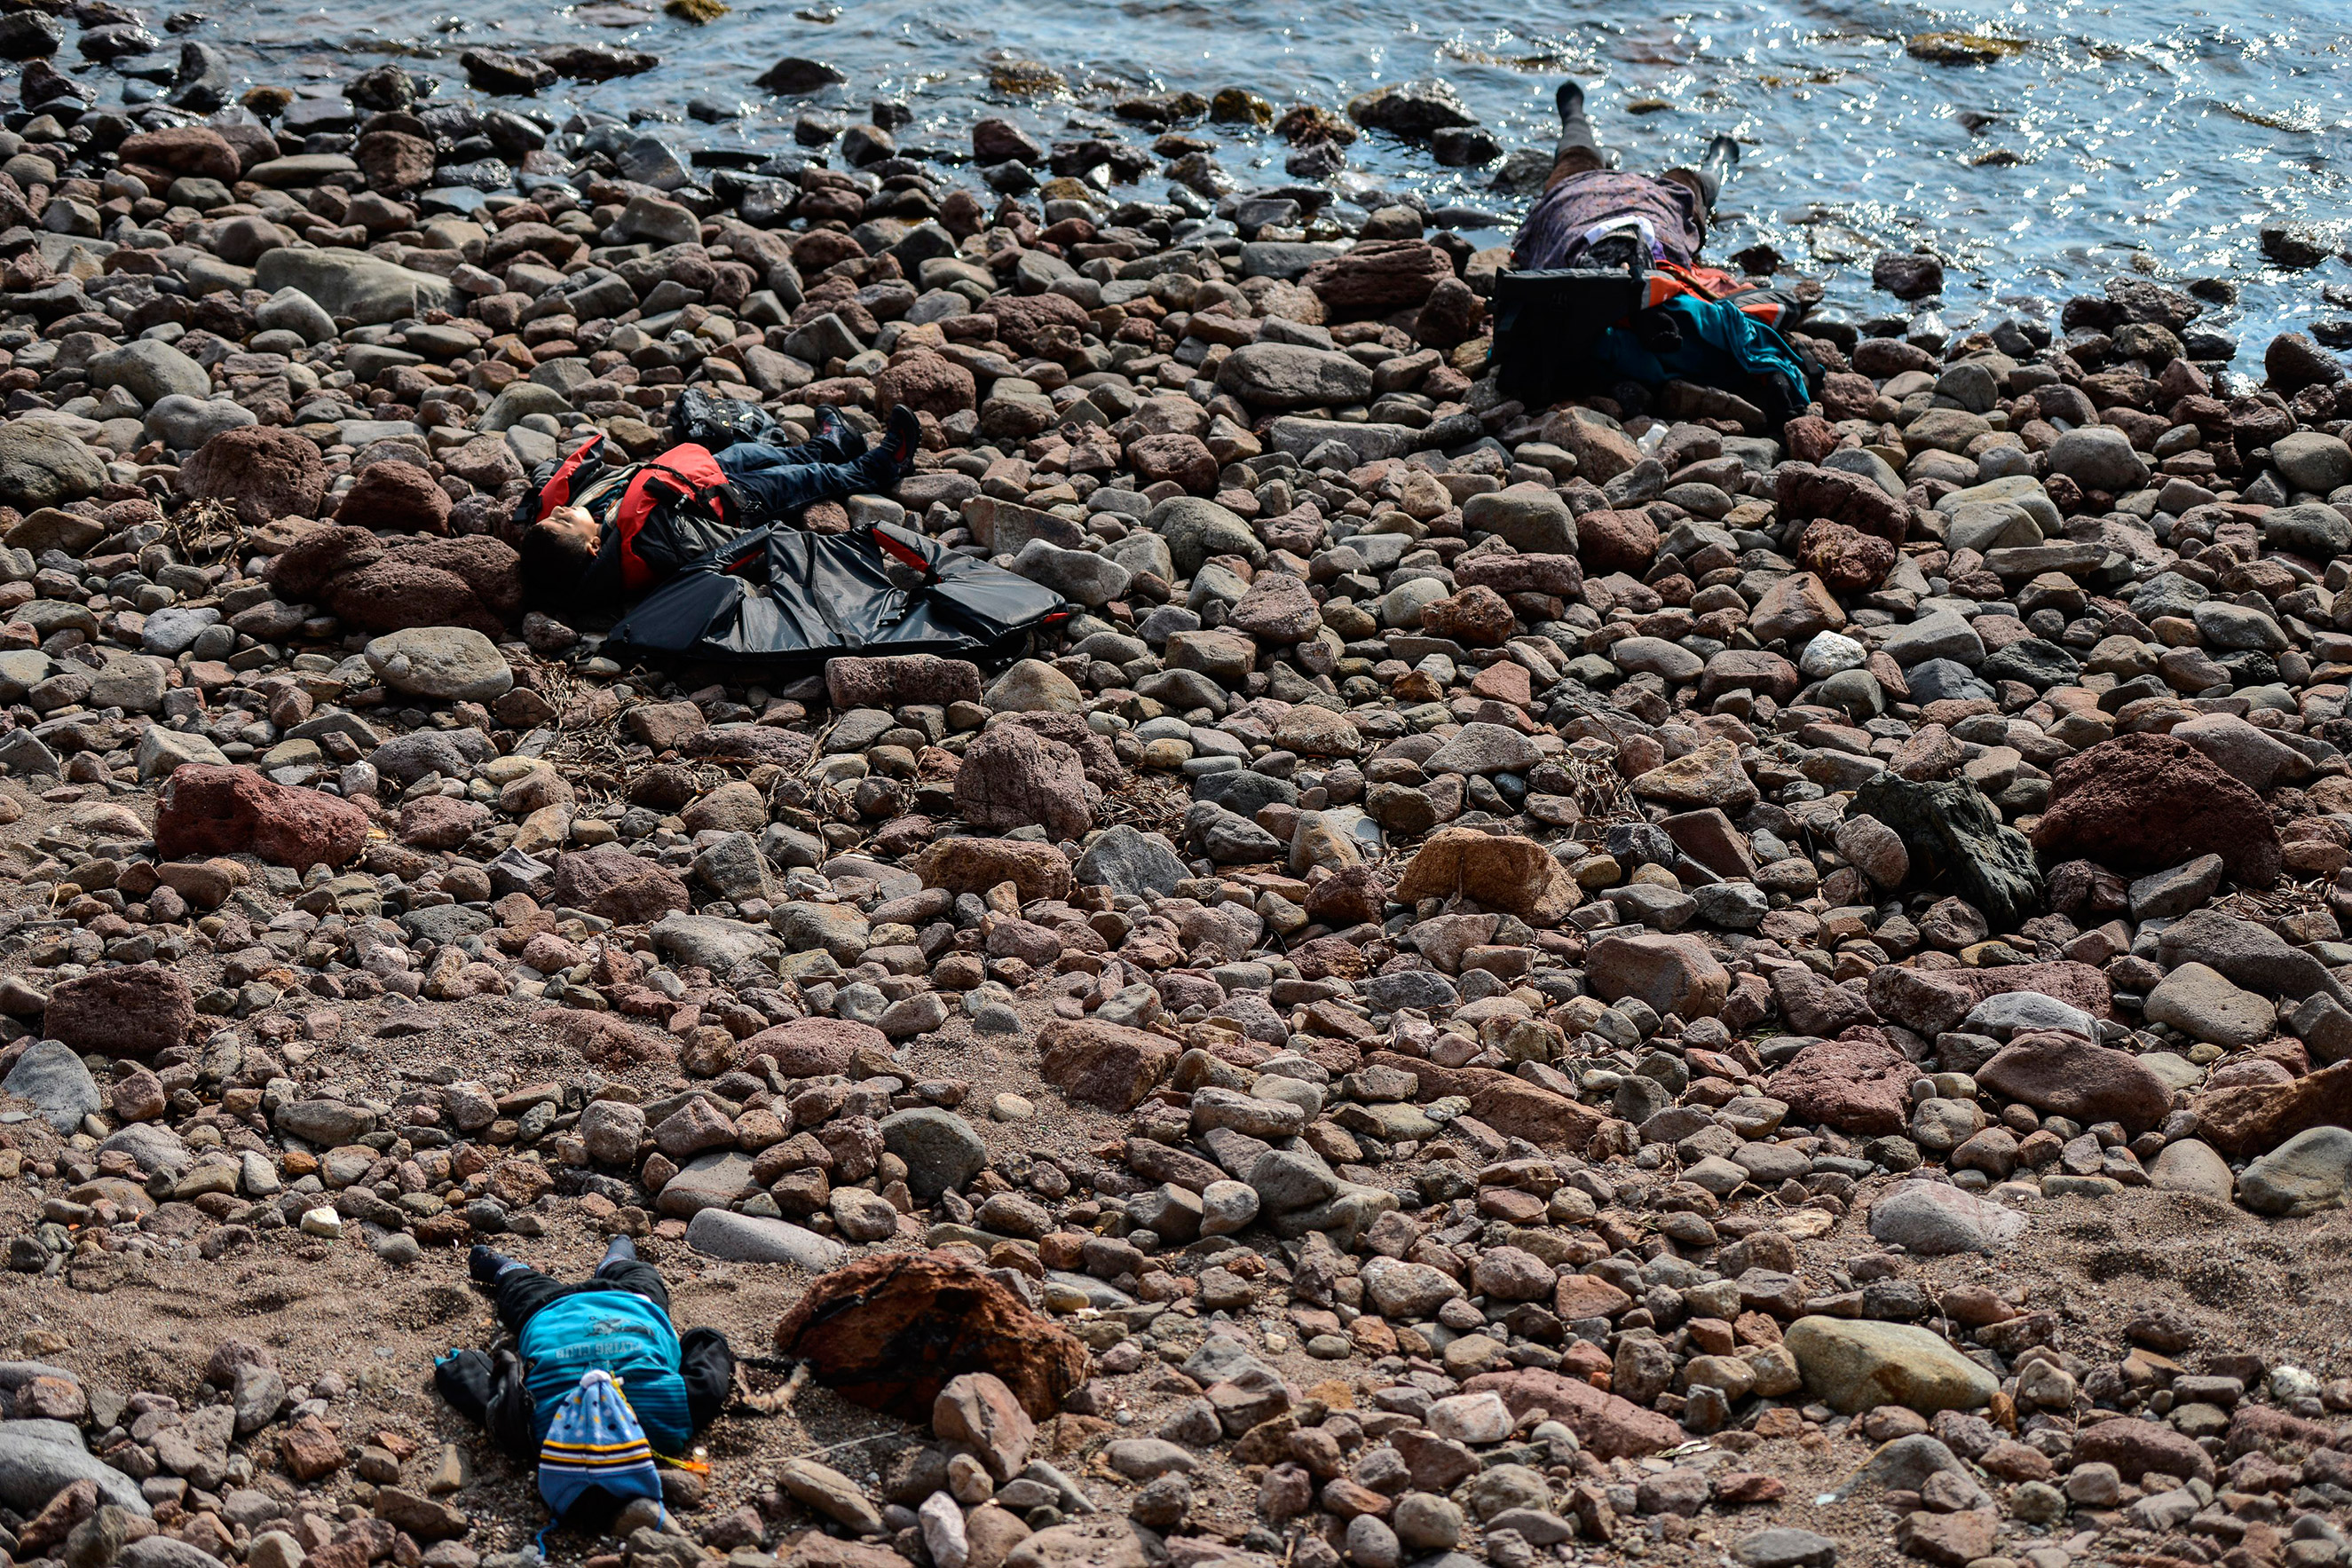 Three bodies are washed up on a beach after authorities said at least 37 people were killed when their boat capsized in the Aegean Sea while trying to cross to Greece from Canakkale province, Turkey, Jan. 30, 2016.